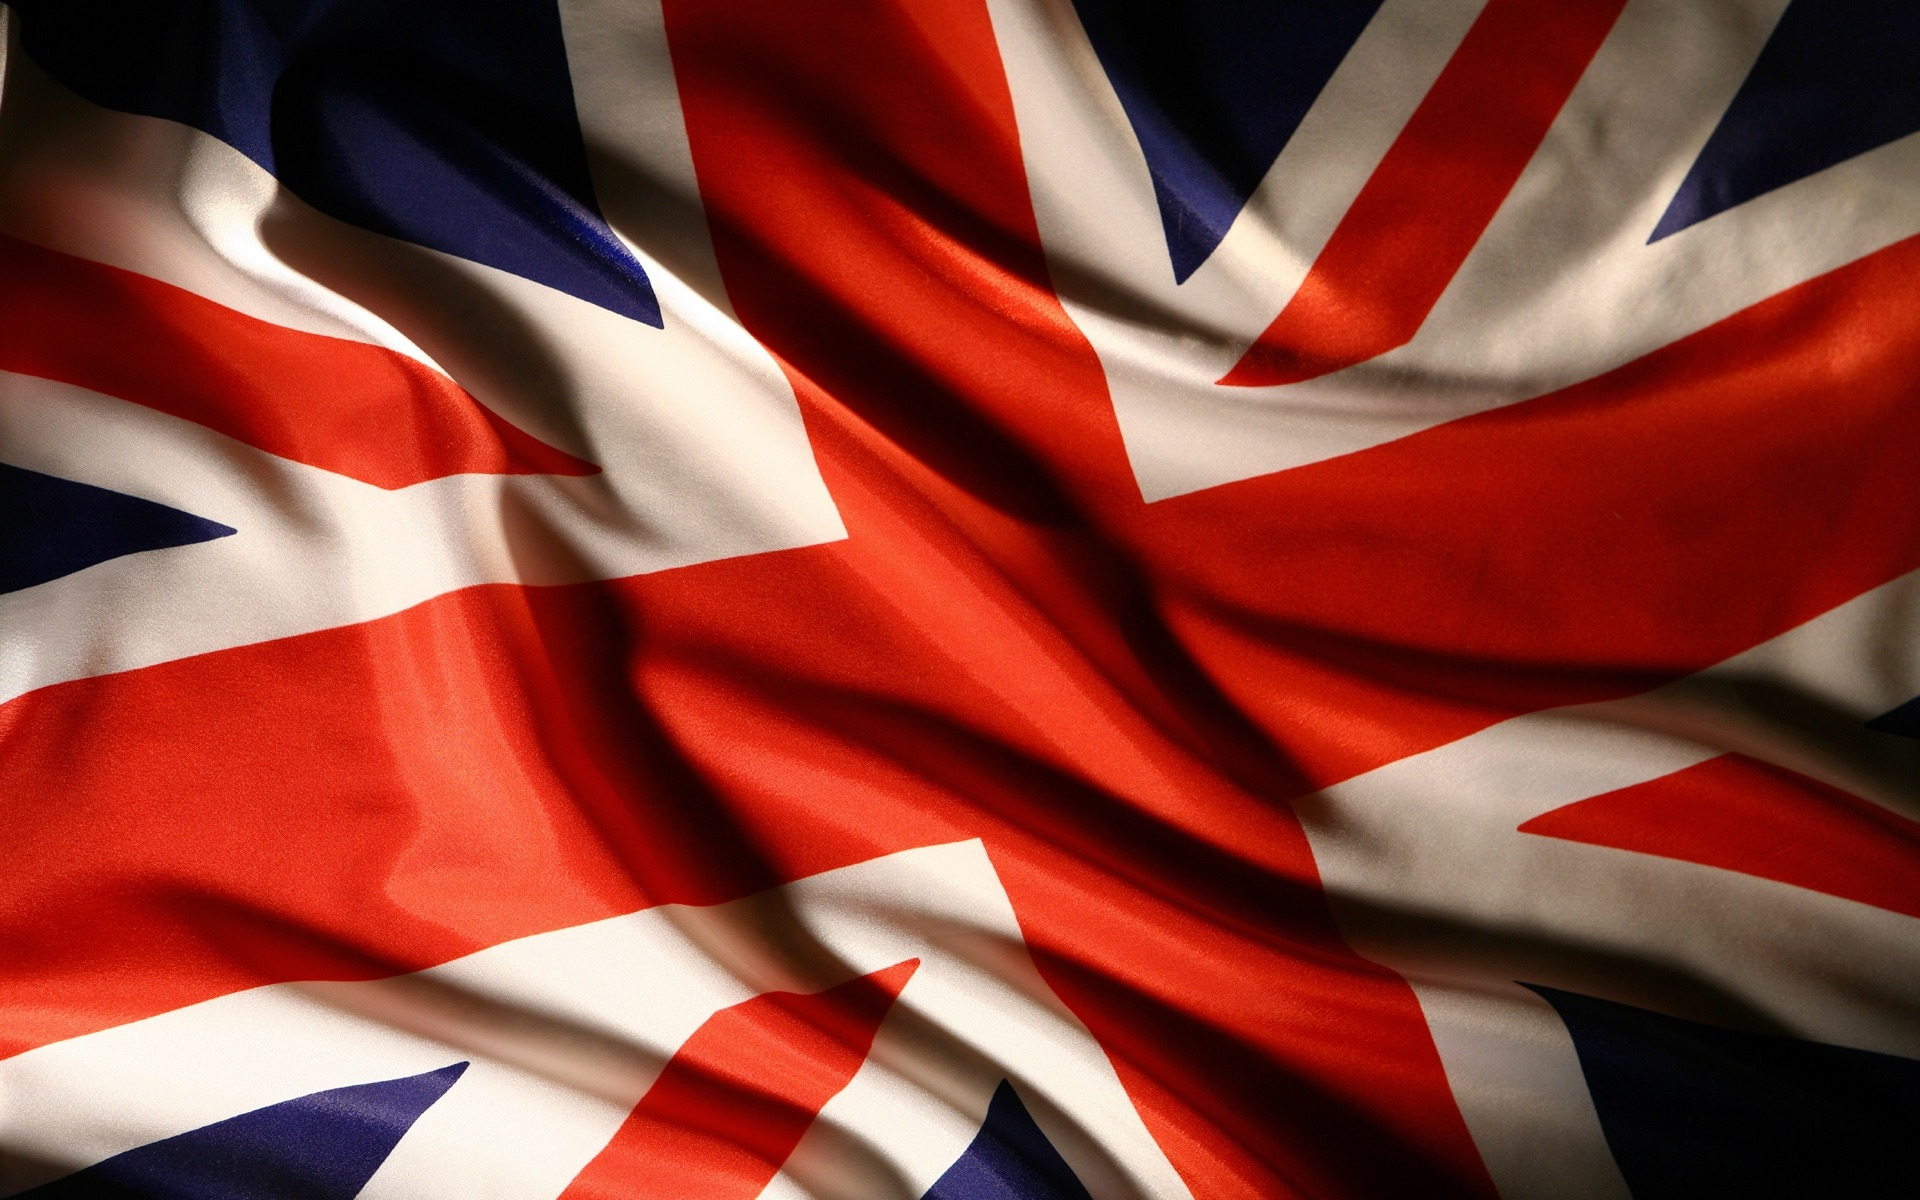 wallpapers backgrounds british - photo #18